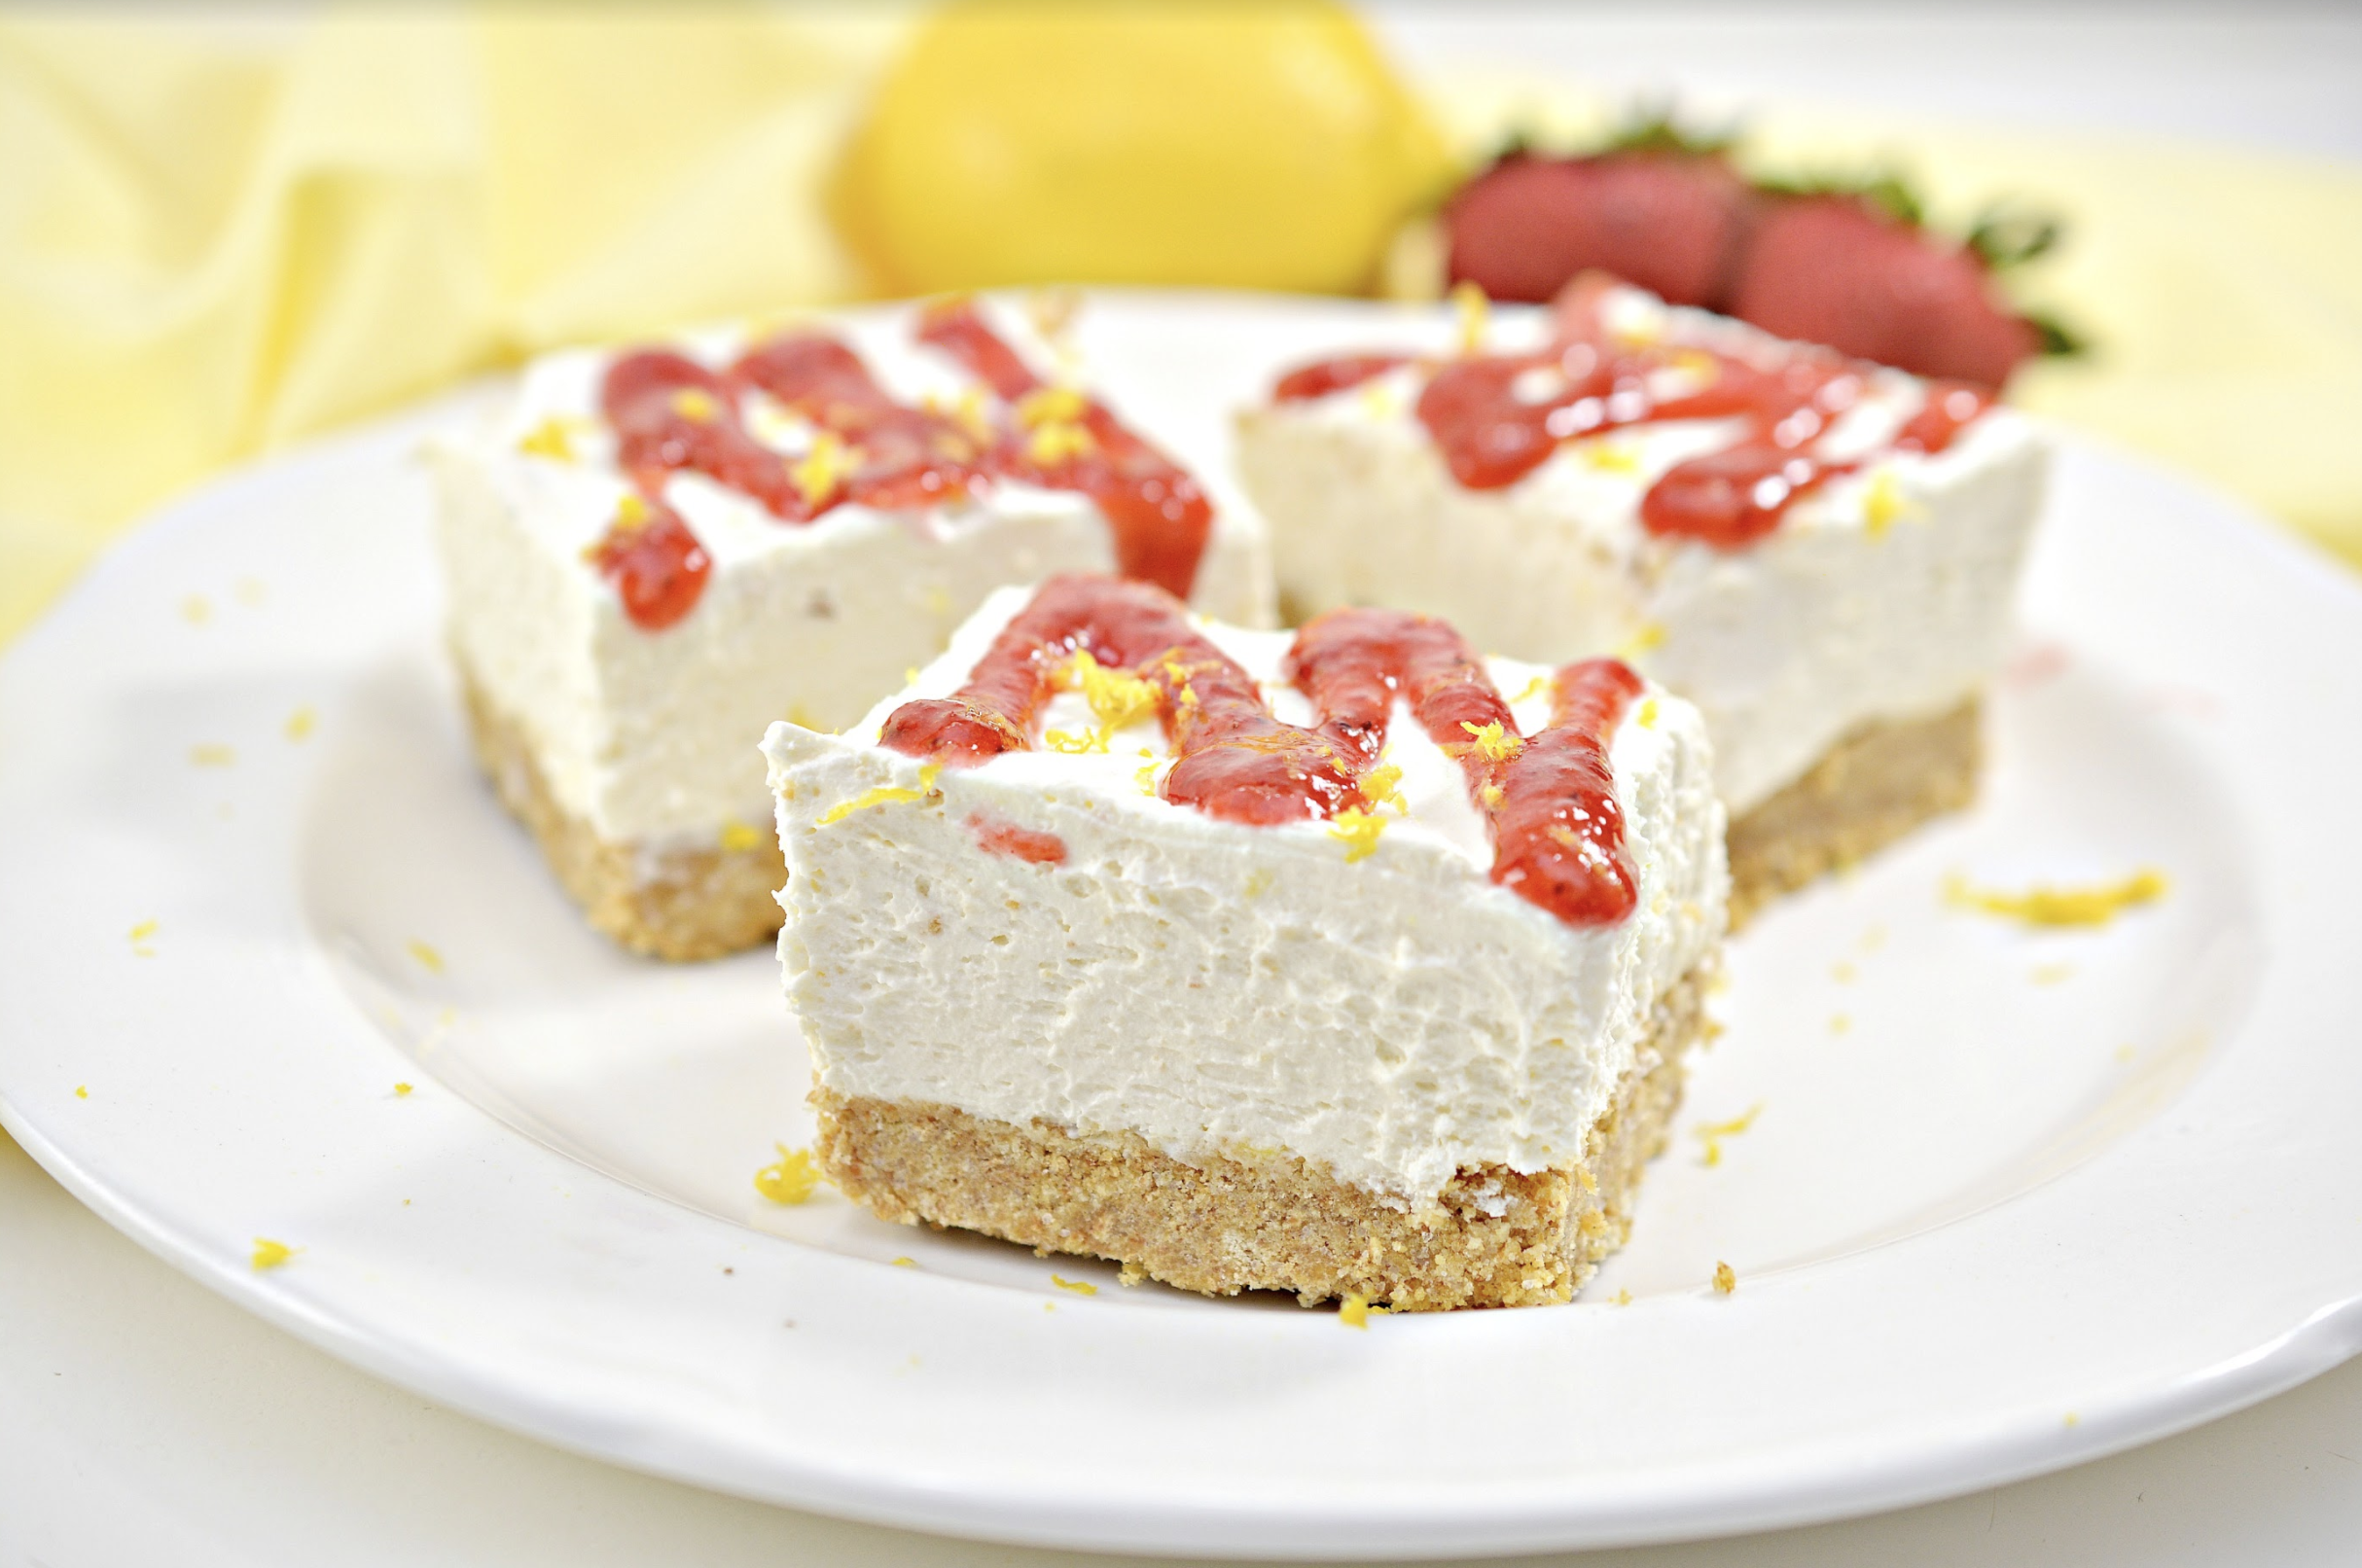 This easy, no-bake lemon and ricotta cheesecake bars recipe is the perfect summer dessert! The addition of creamy ricotta cheese makes it even lighter and tastier! #desserts #nobakedesserts #baking #easyrecipes #easydesserts #nobake #summerdesserts #dessertrecipes #cheesecake #cheesecakebars #foodblog #foodblogger #hipmamasplace #ad #galbanicheese #galbani #JuneDairyMonth #JDM2020